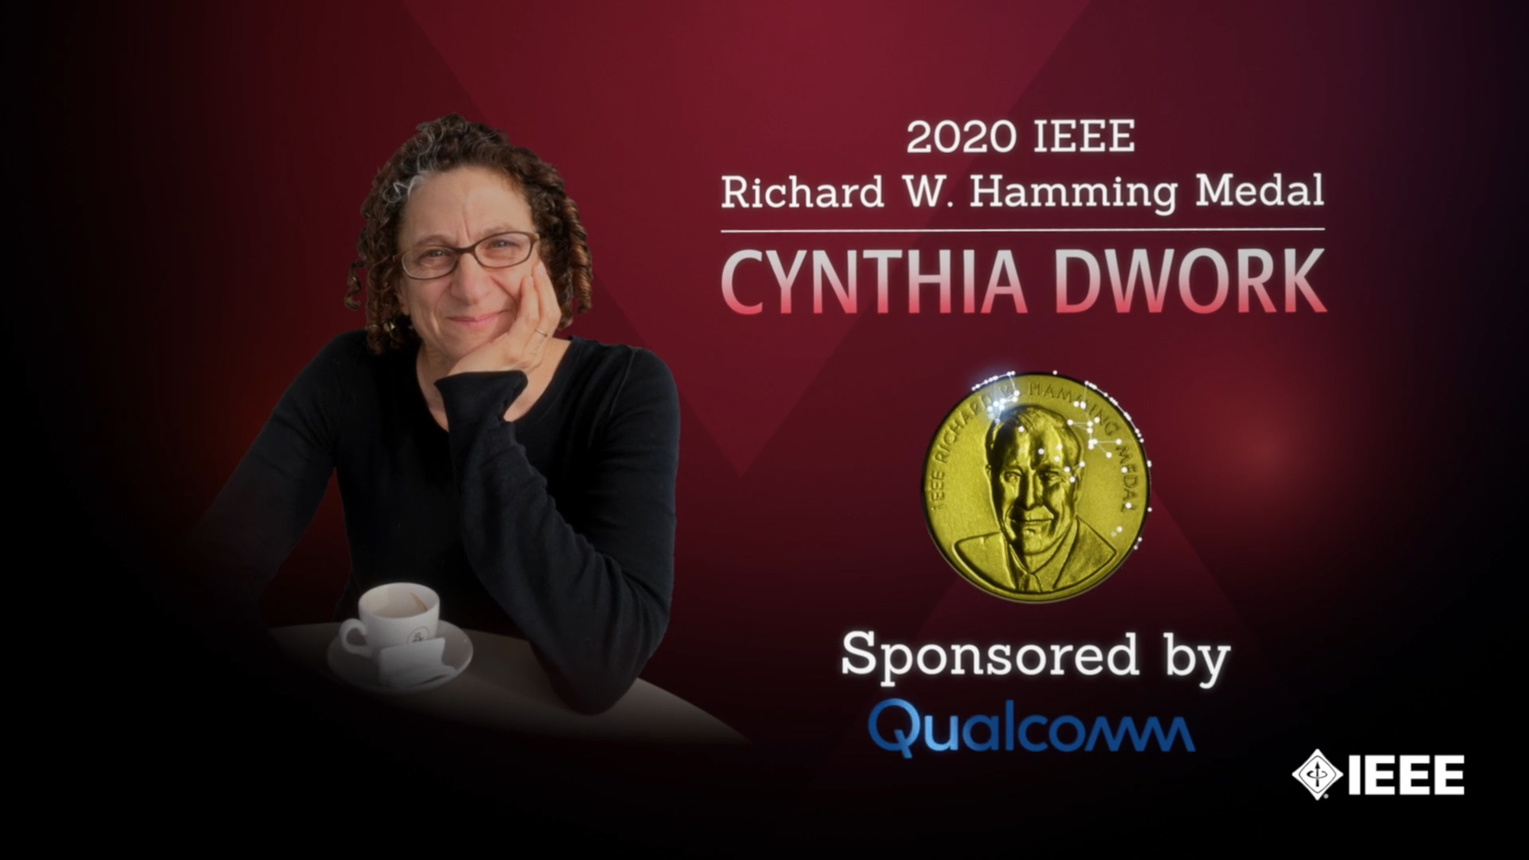 Honors 2020: Cynthia Dwork Wins the IEEE Richard W. Hamming Medal